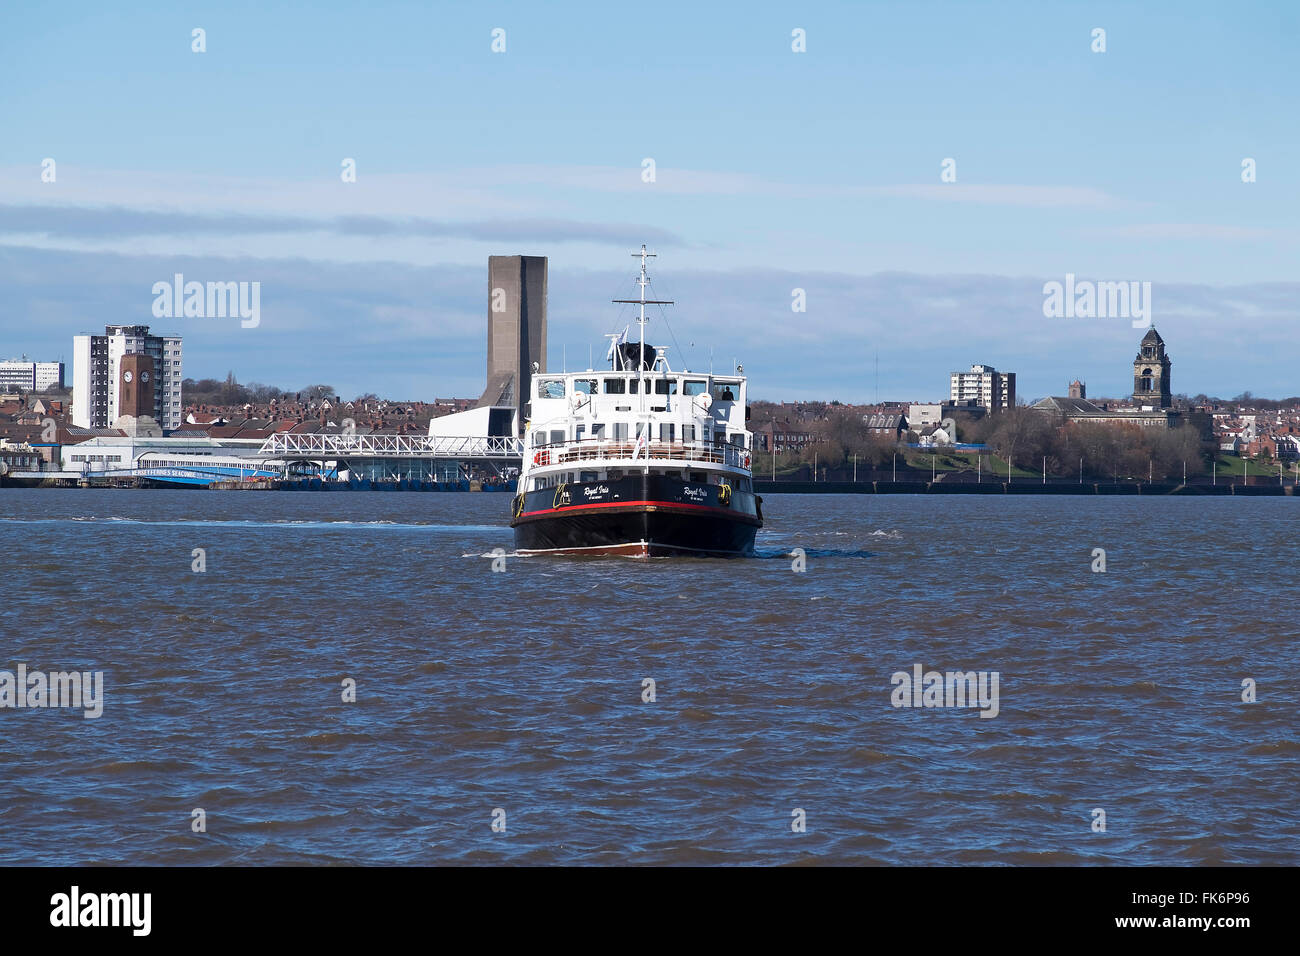 Ferry boat on the river Mersey around the Albert docks, Liverpool. - Stock Image